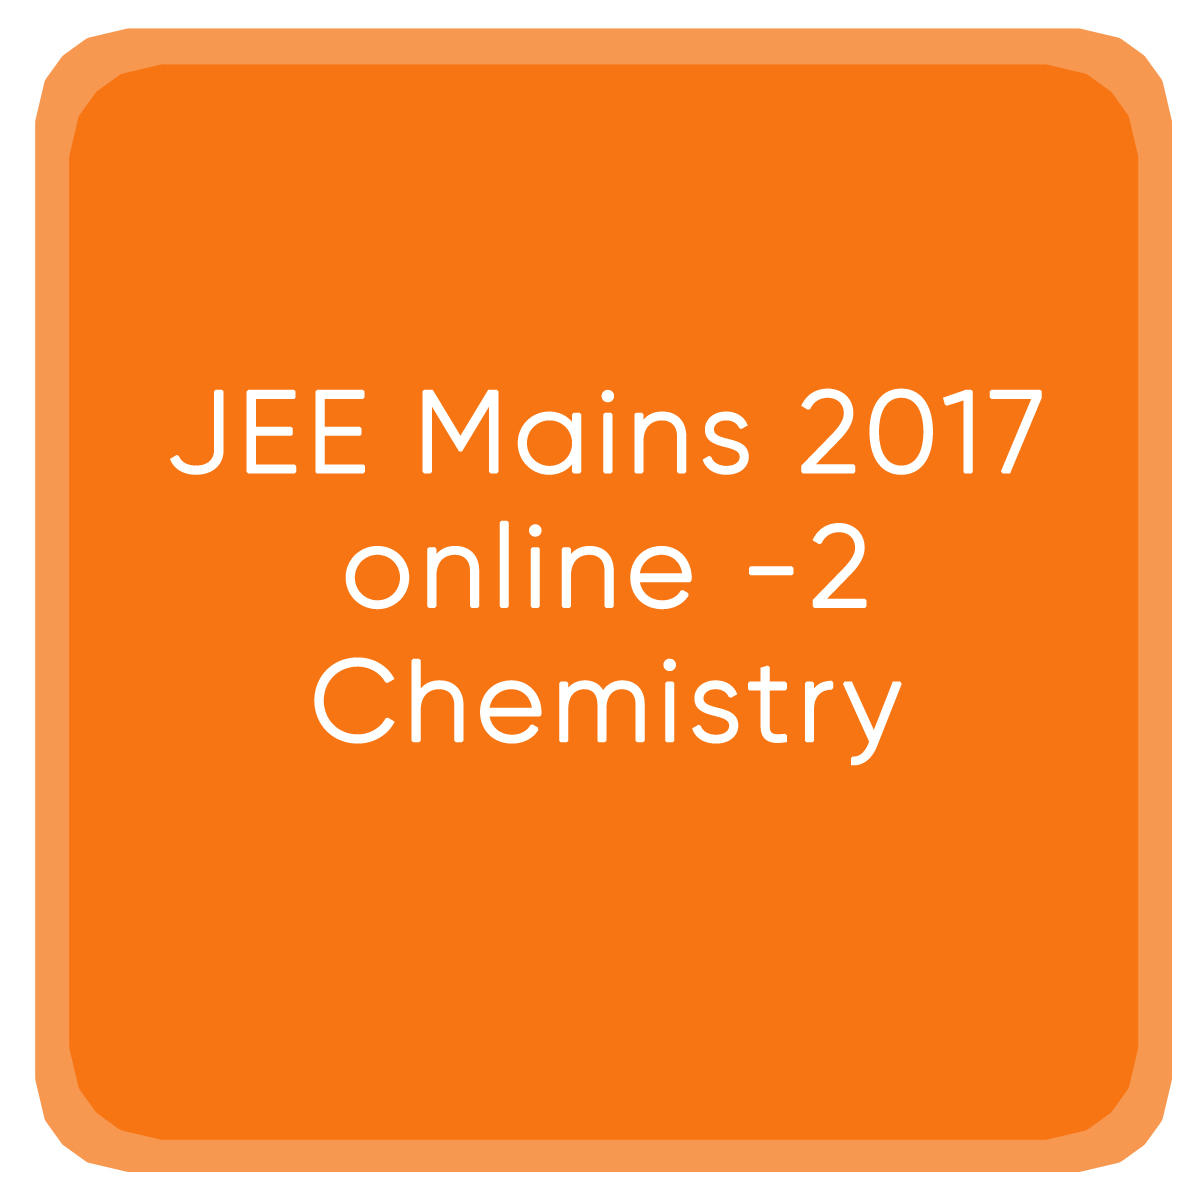 JEE Mains 2017 online -2 Chemistry